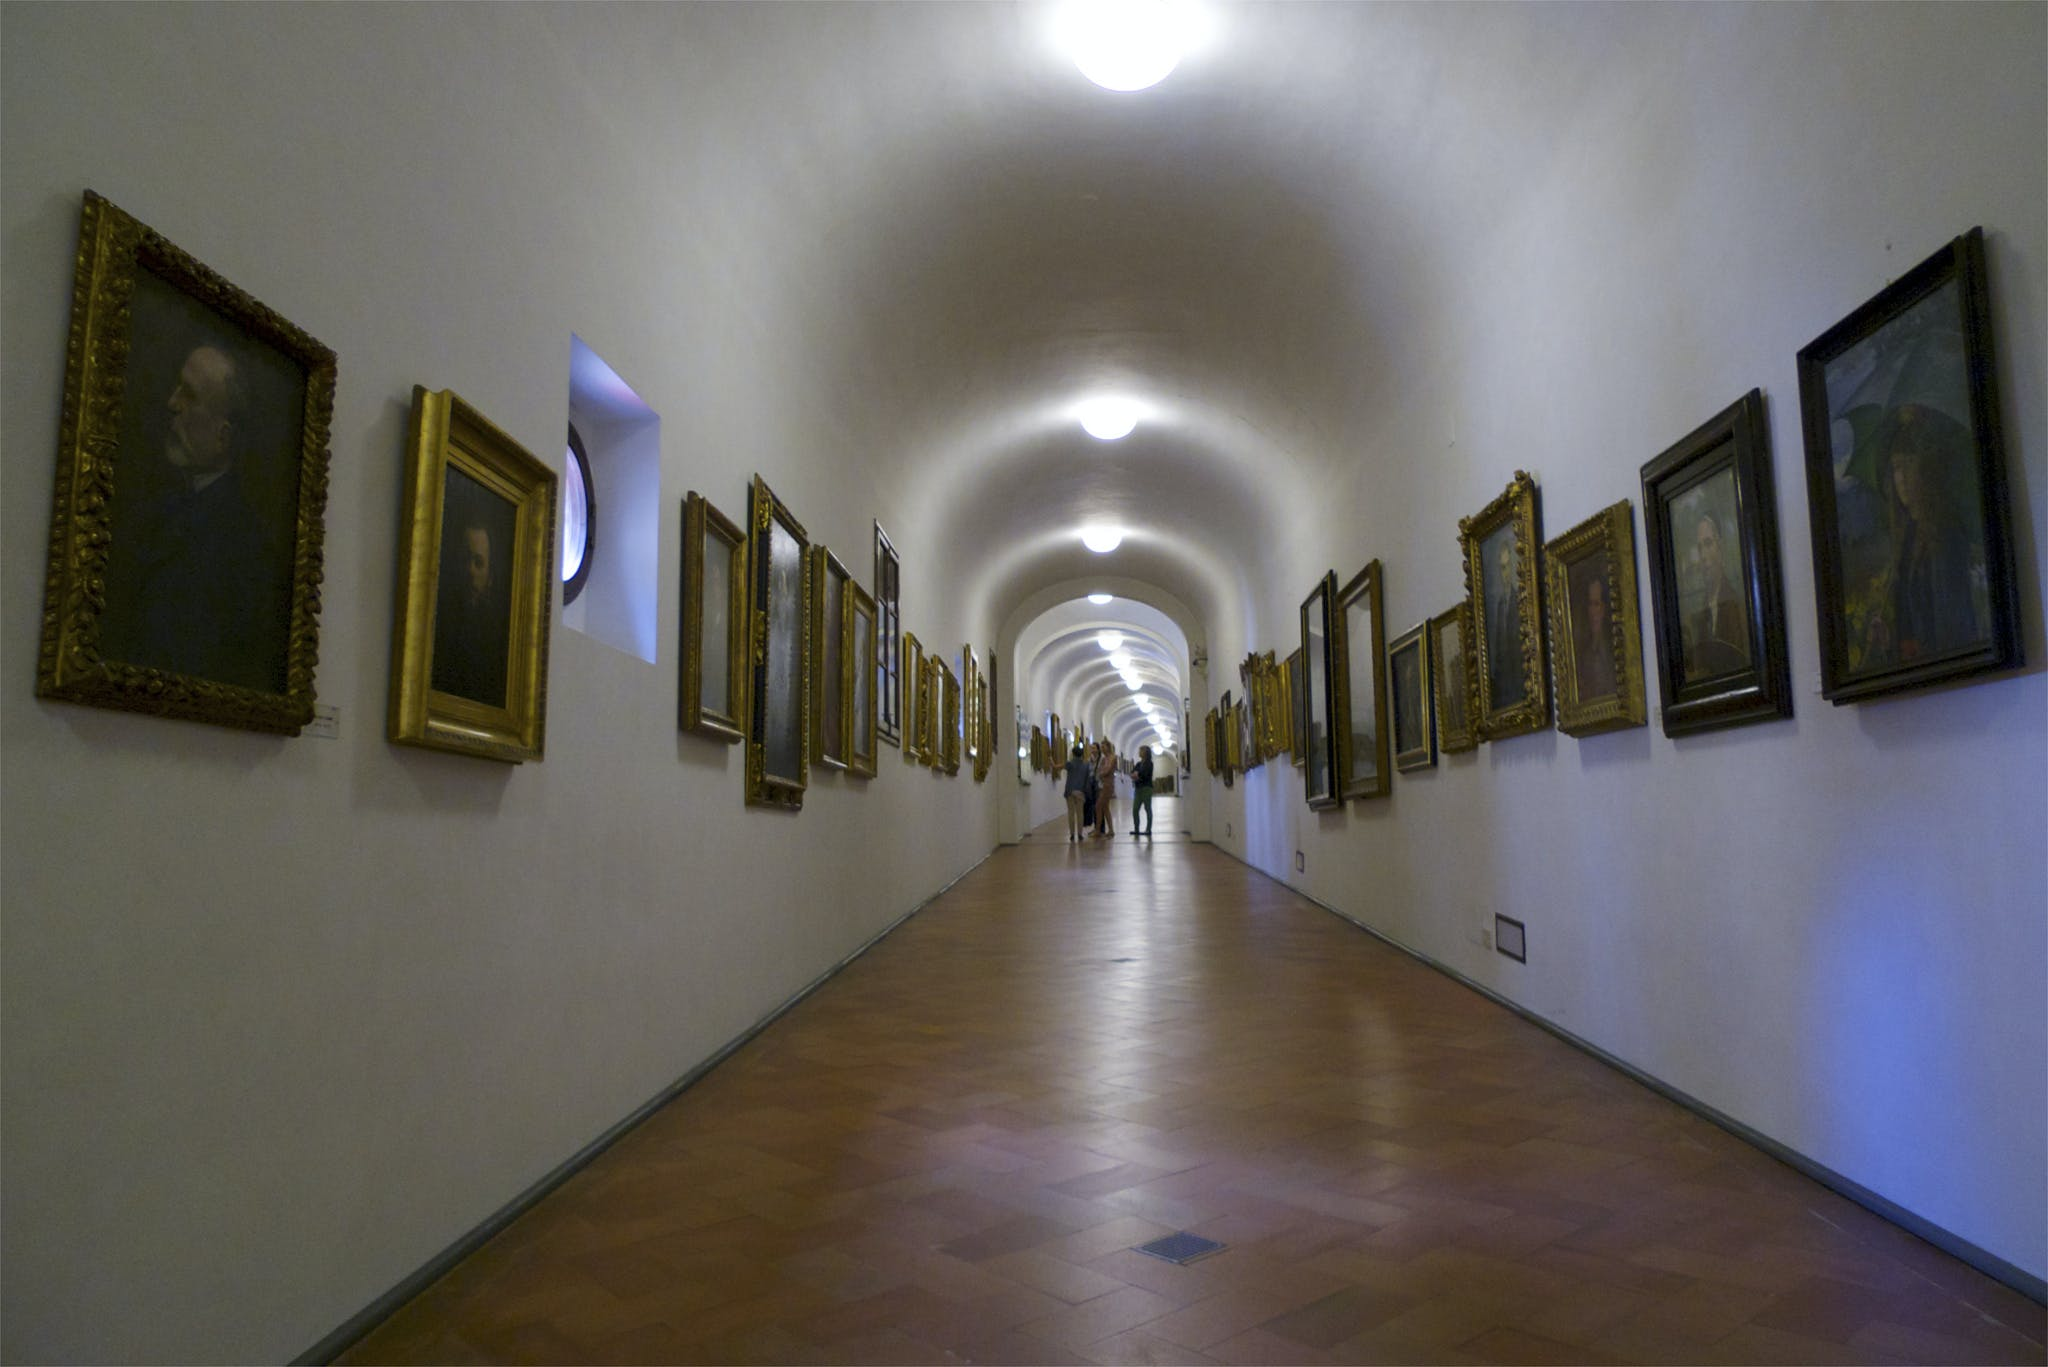 A glimpse of the Vasari Corridor